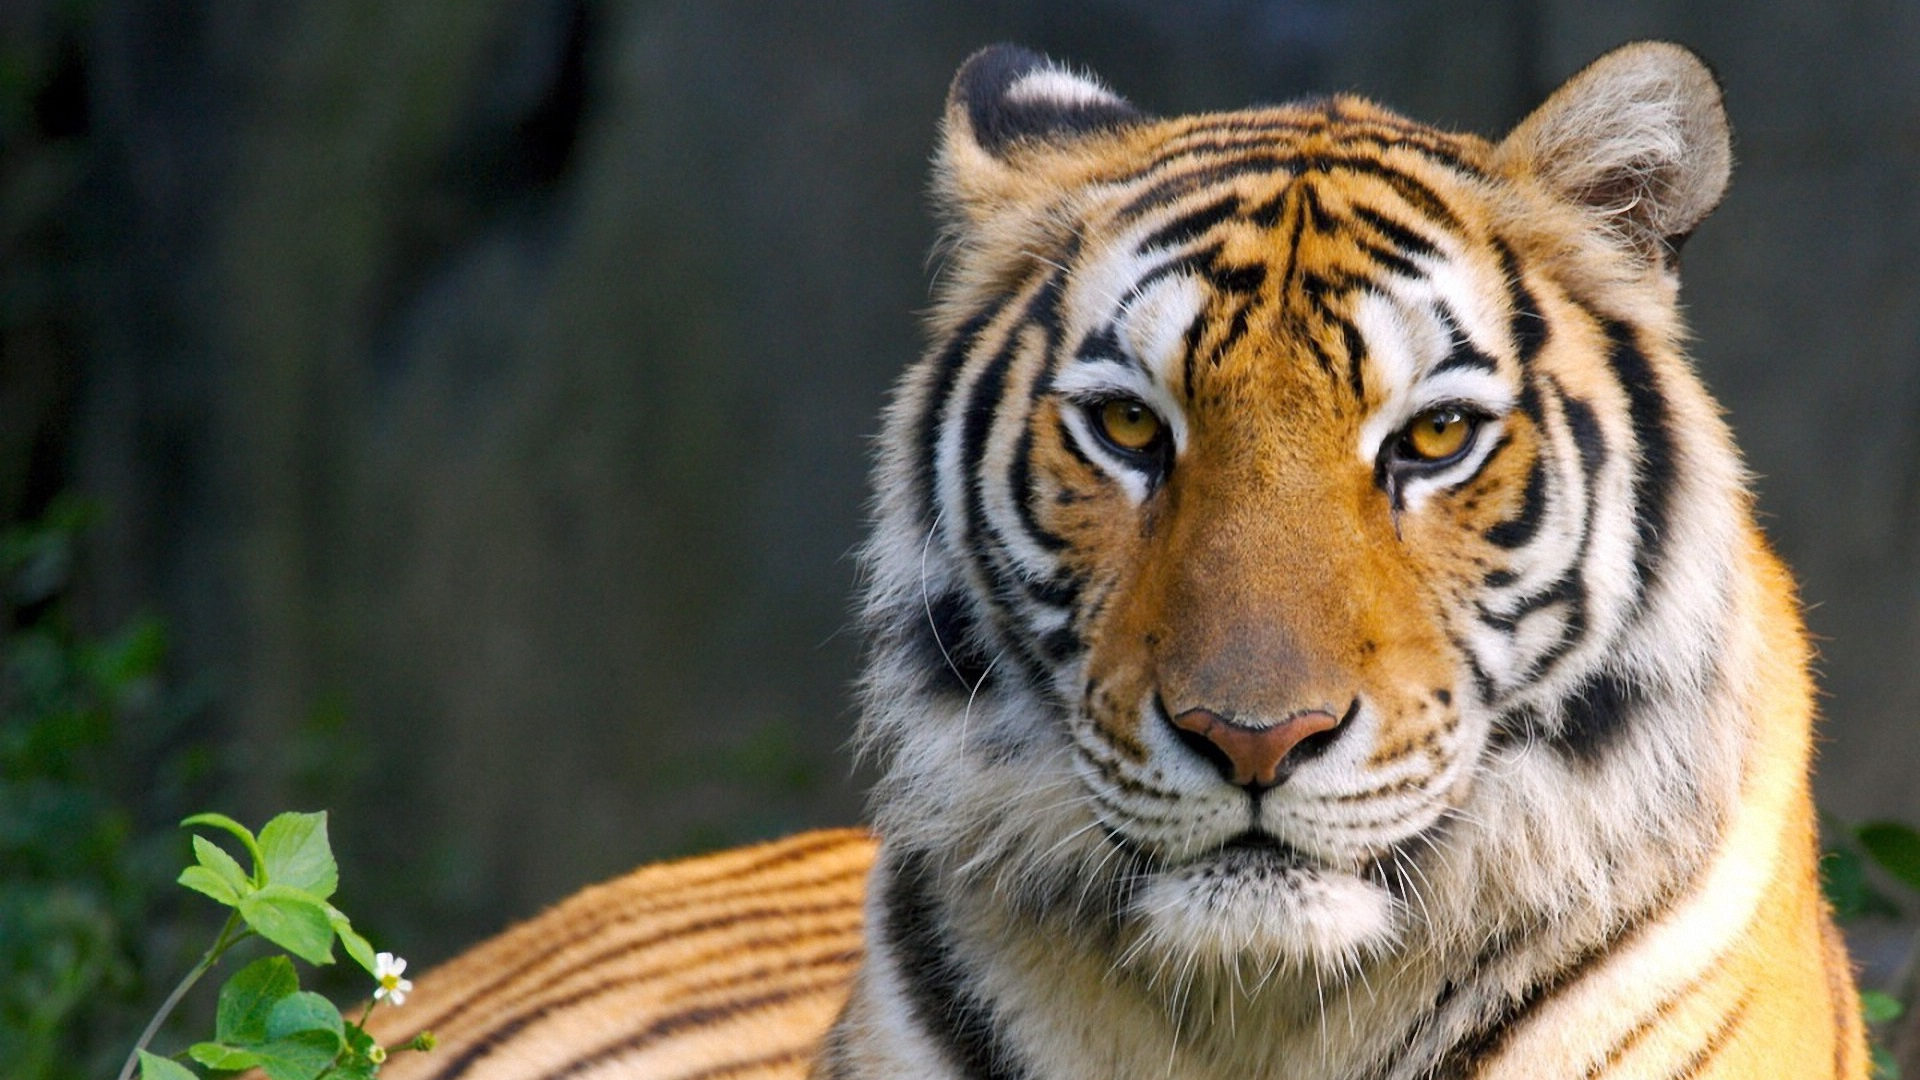 Hd Tiger Pictures Tiger Wallpapers: Bengal Tiger HD Wallpapers